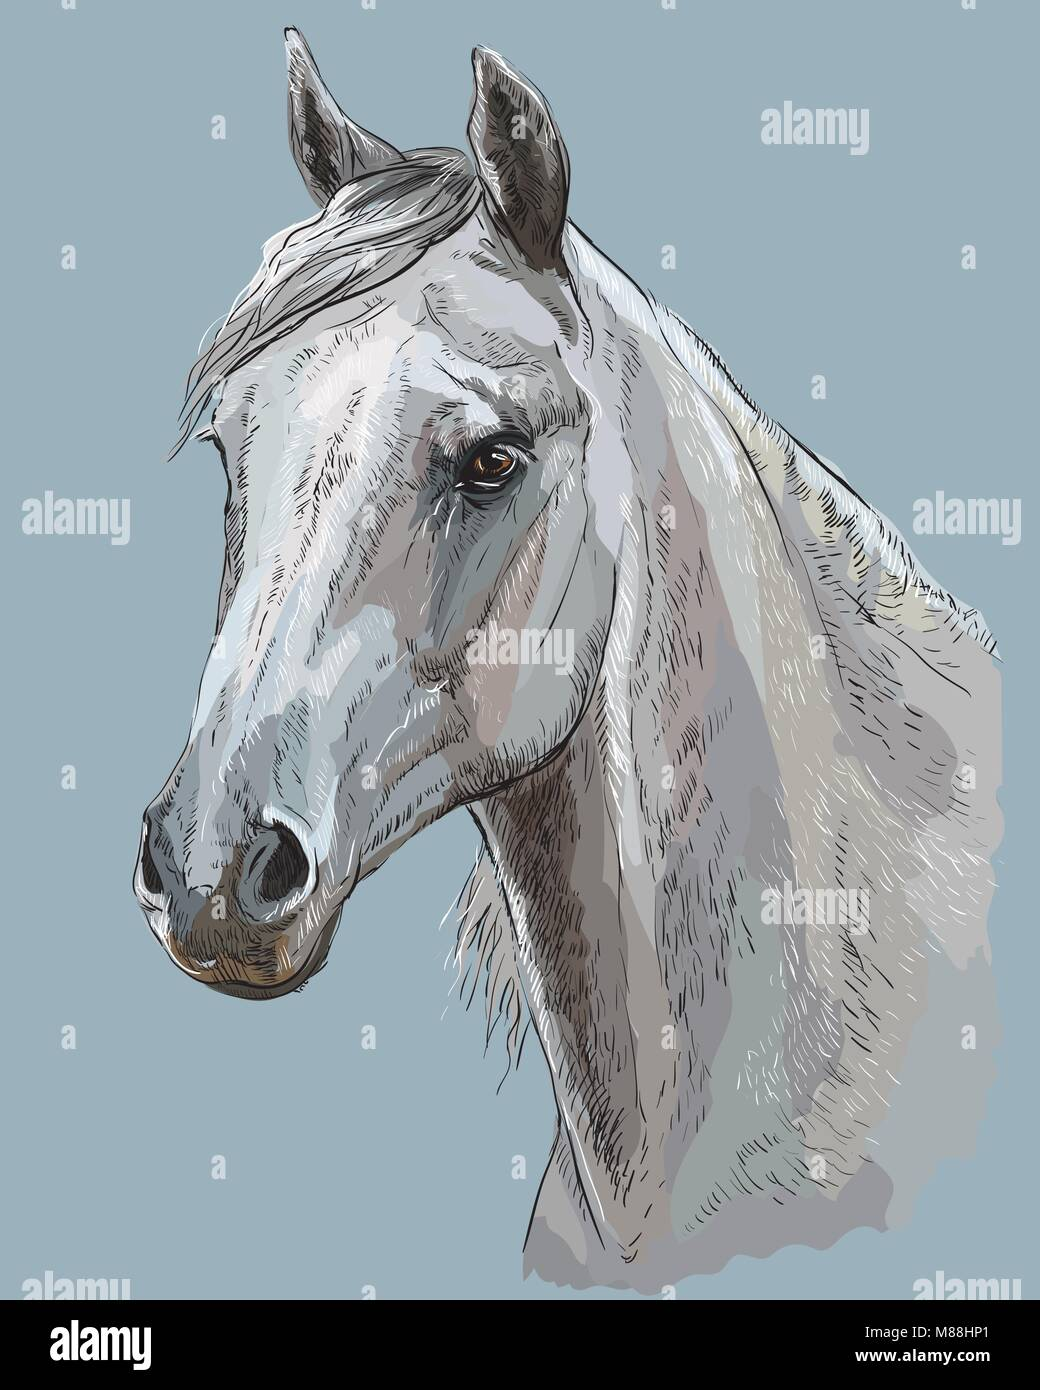 Page 2 White Horse Head Painting High Resolution Stock Photography And Images Alamy